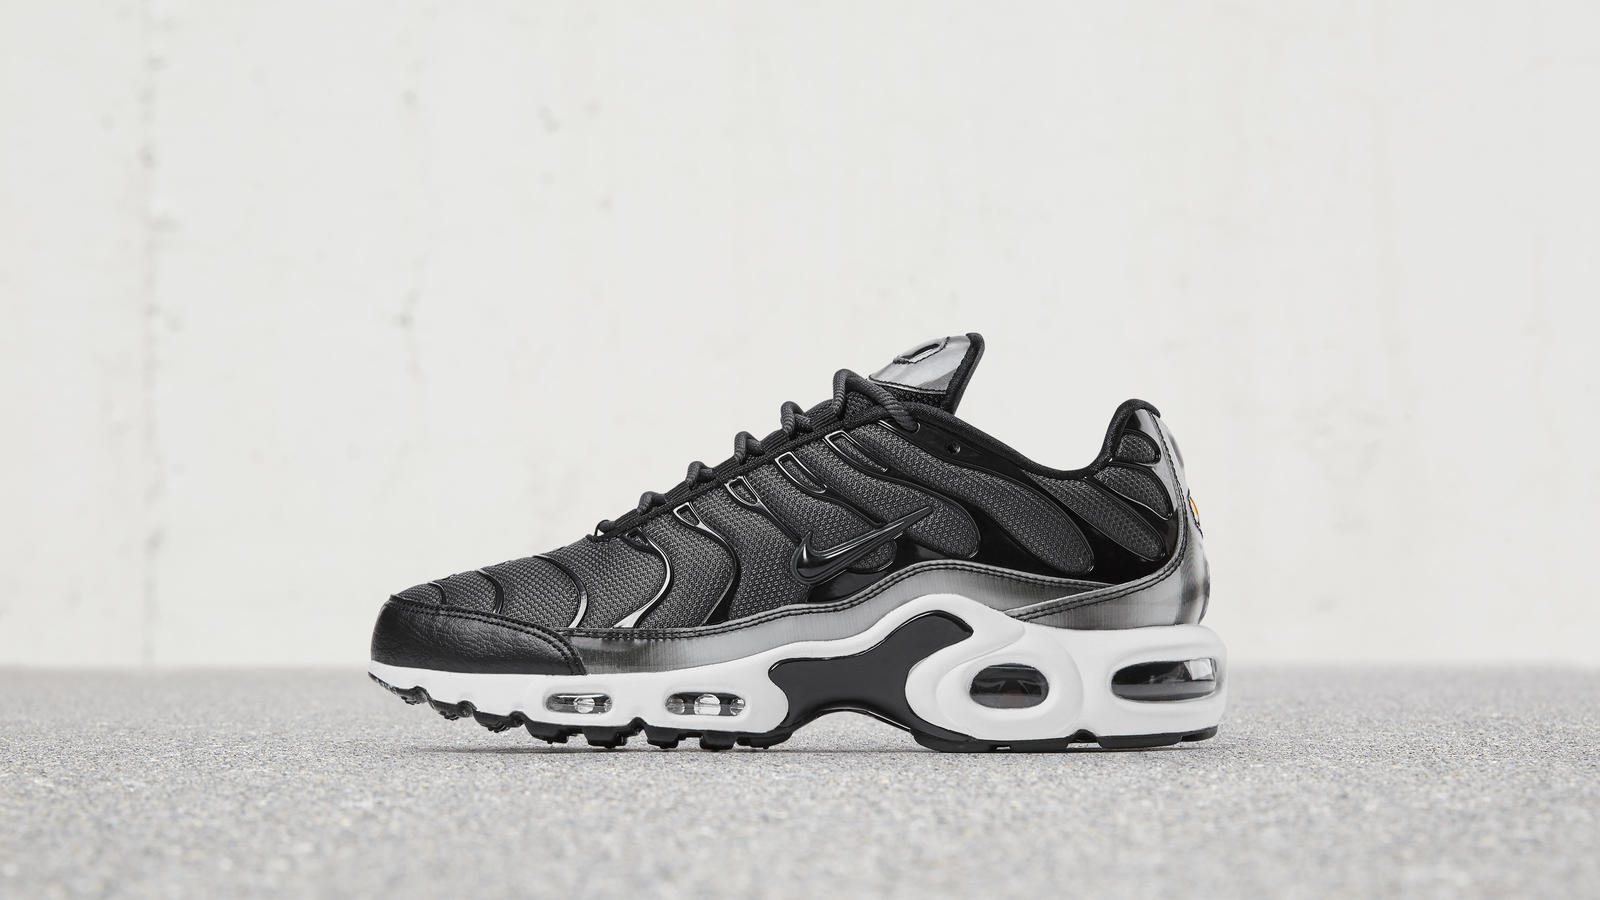 Air max plus holographic black 1 hd 1600